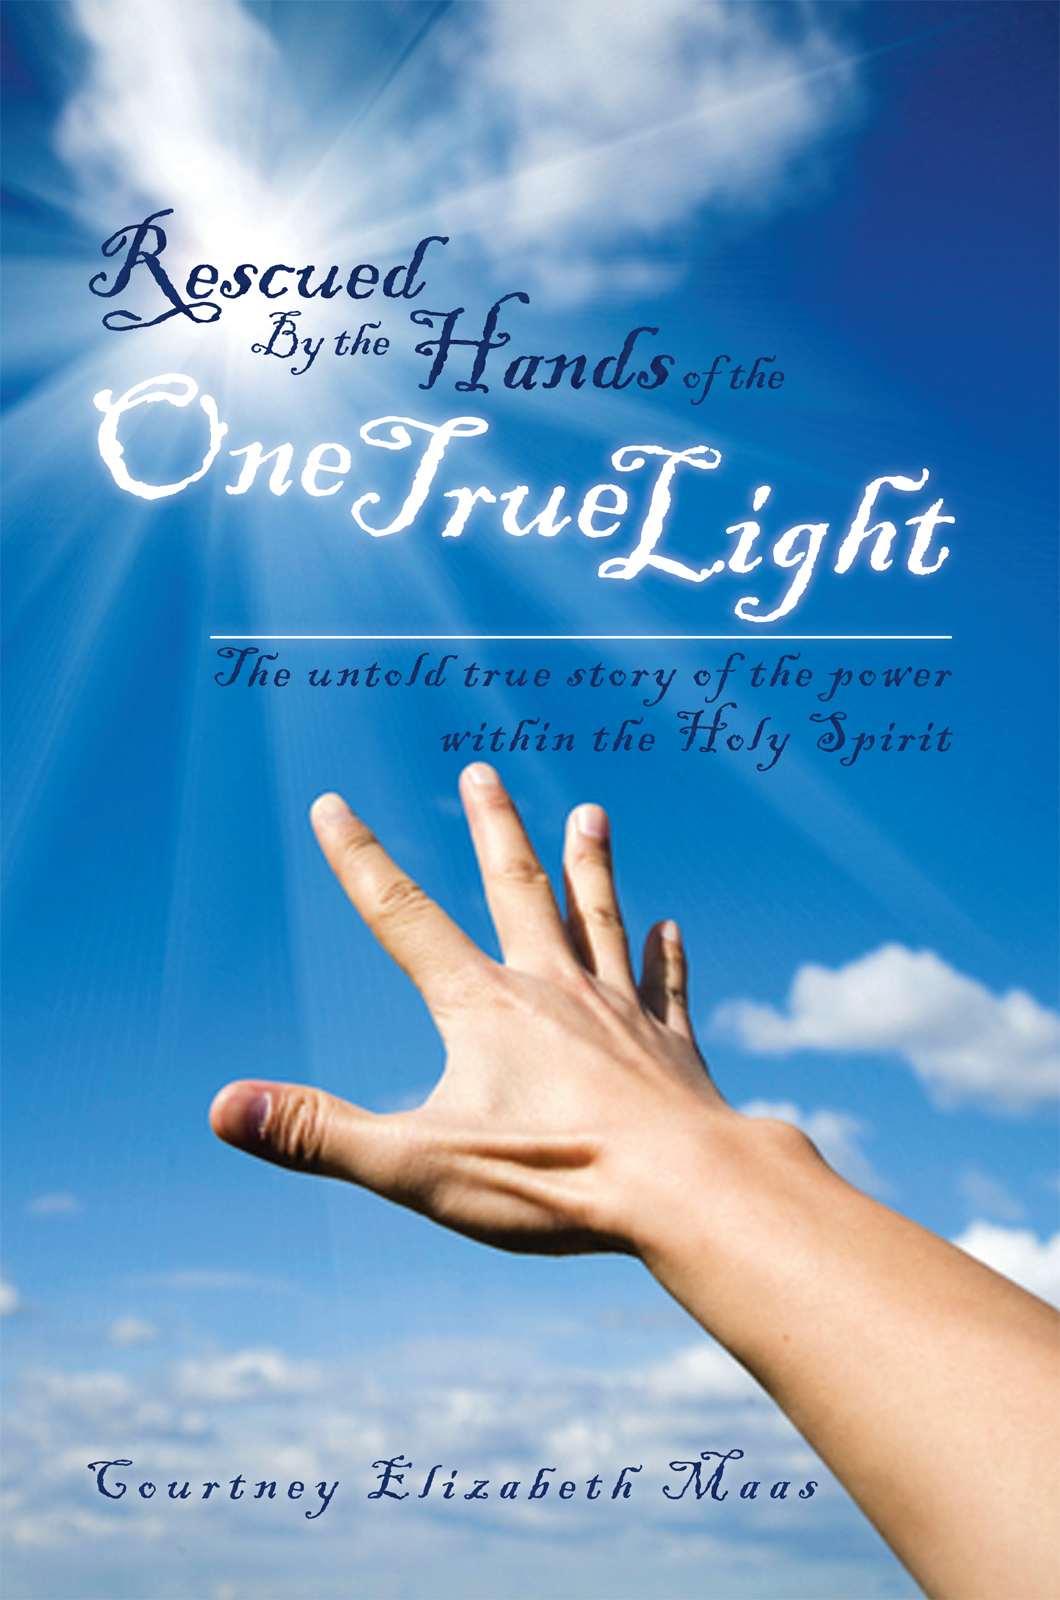 Rescued By the Hands of the One True Light By: Courtney Elizabeth Maas